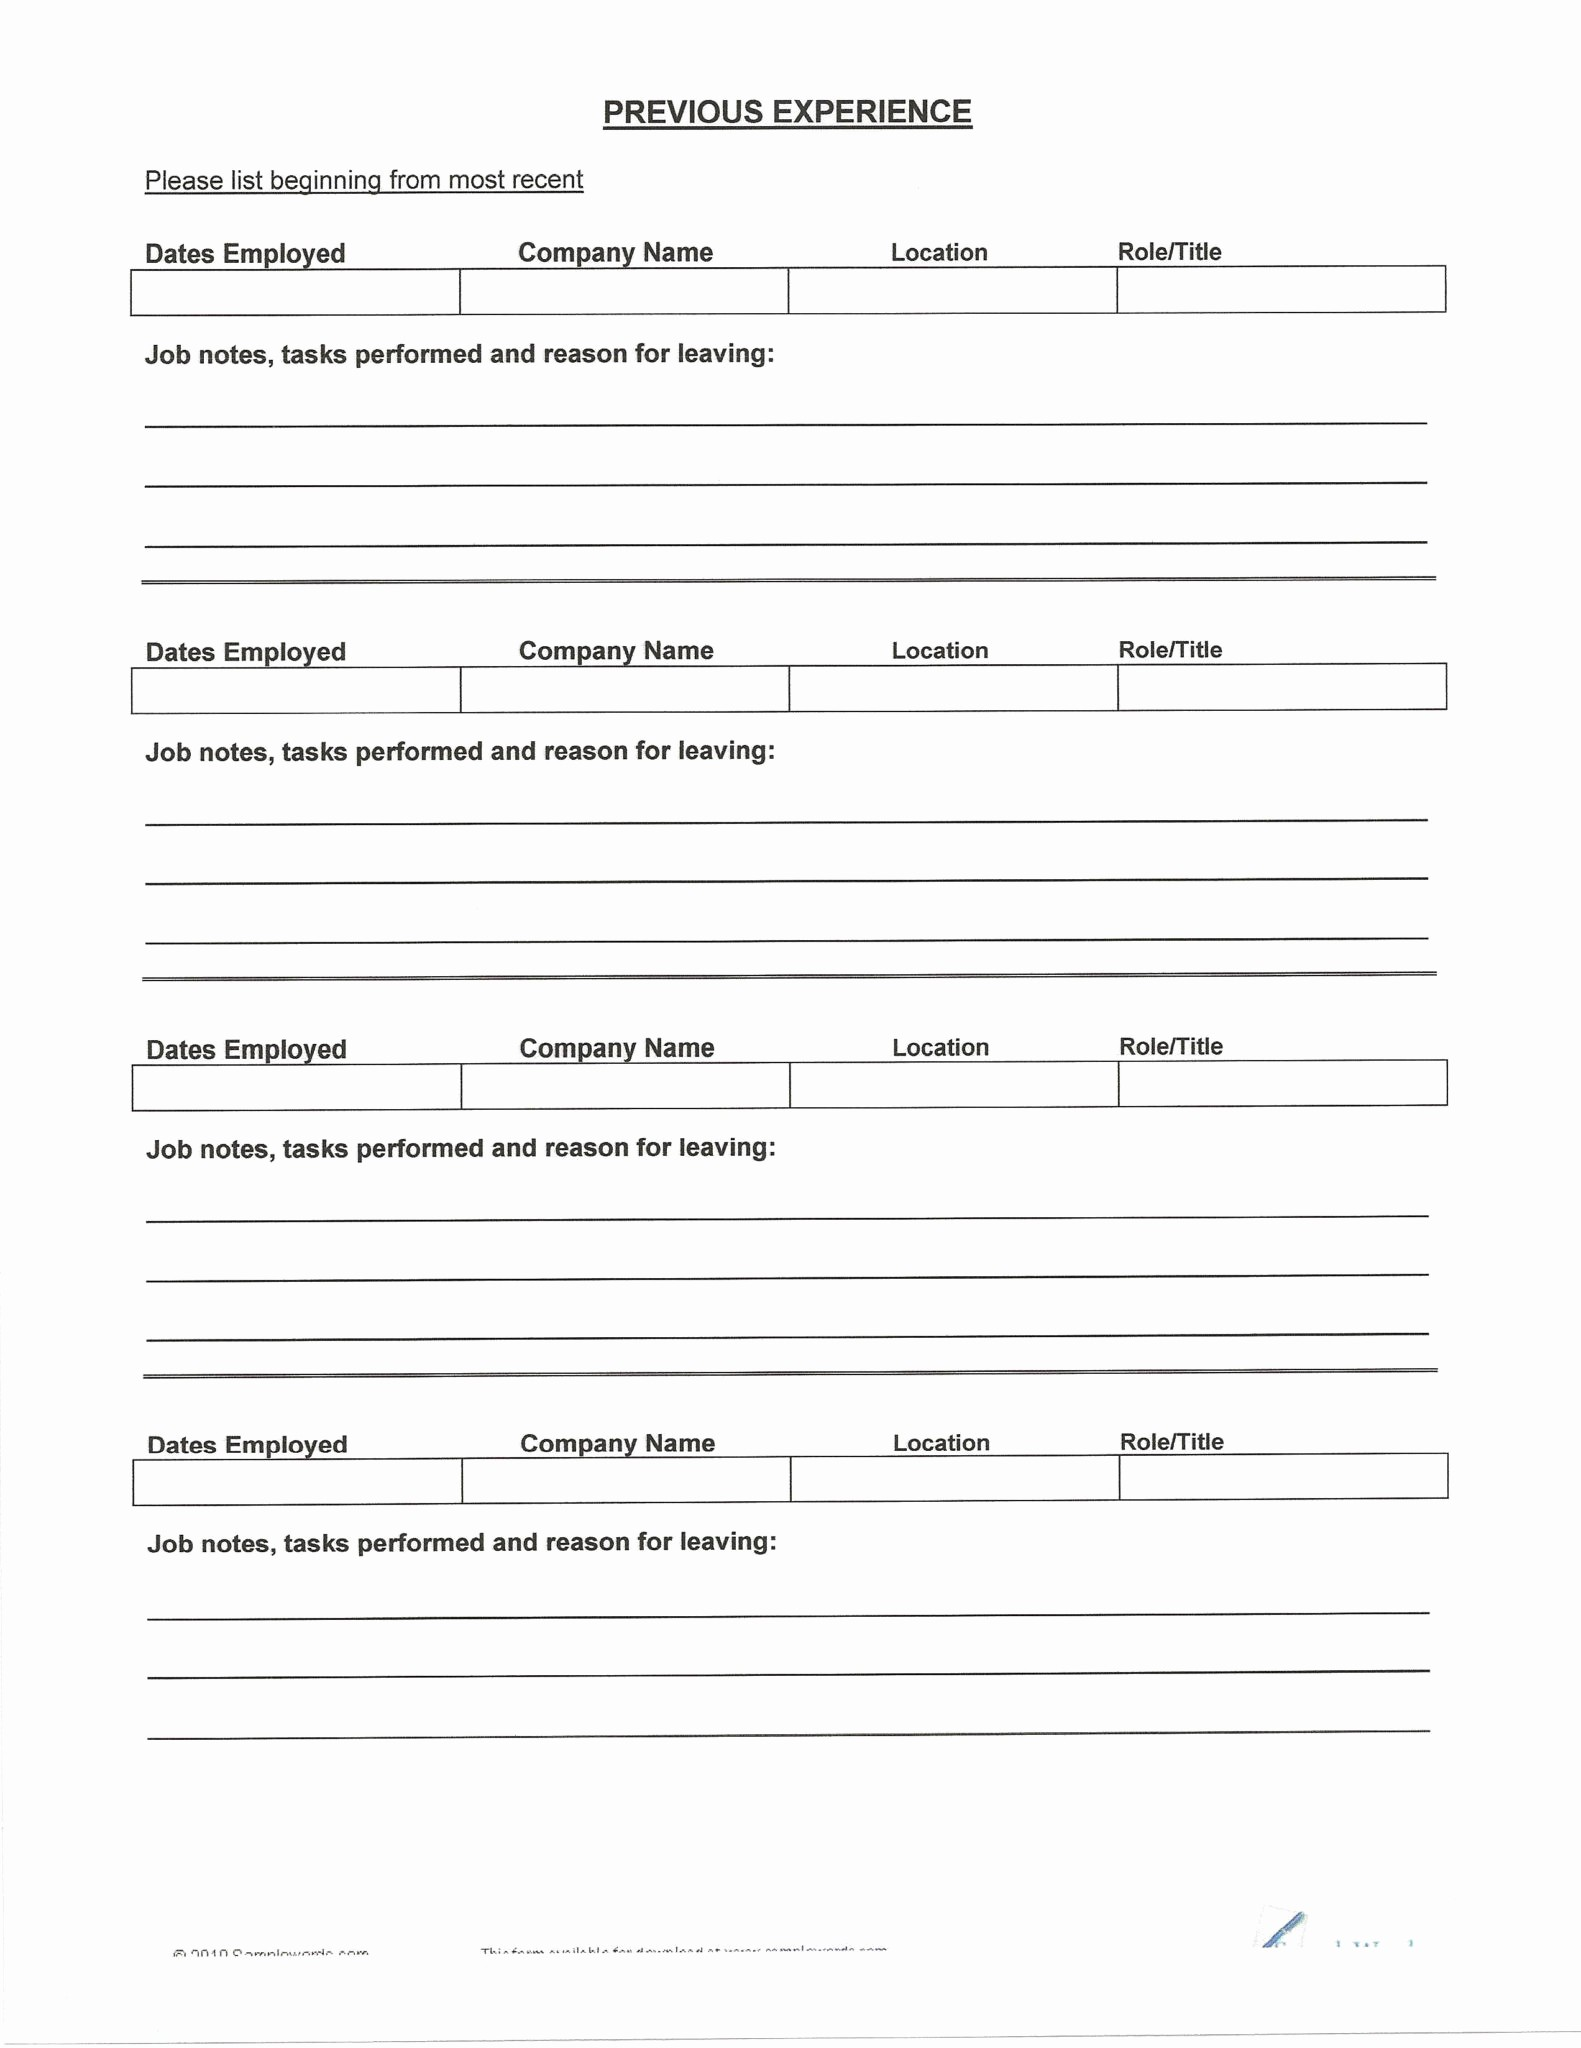 Resume forms to Fill Out Awesome Resume format Blank Resume form to Print Out